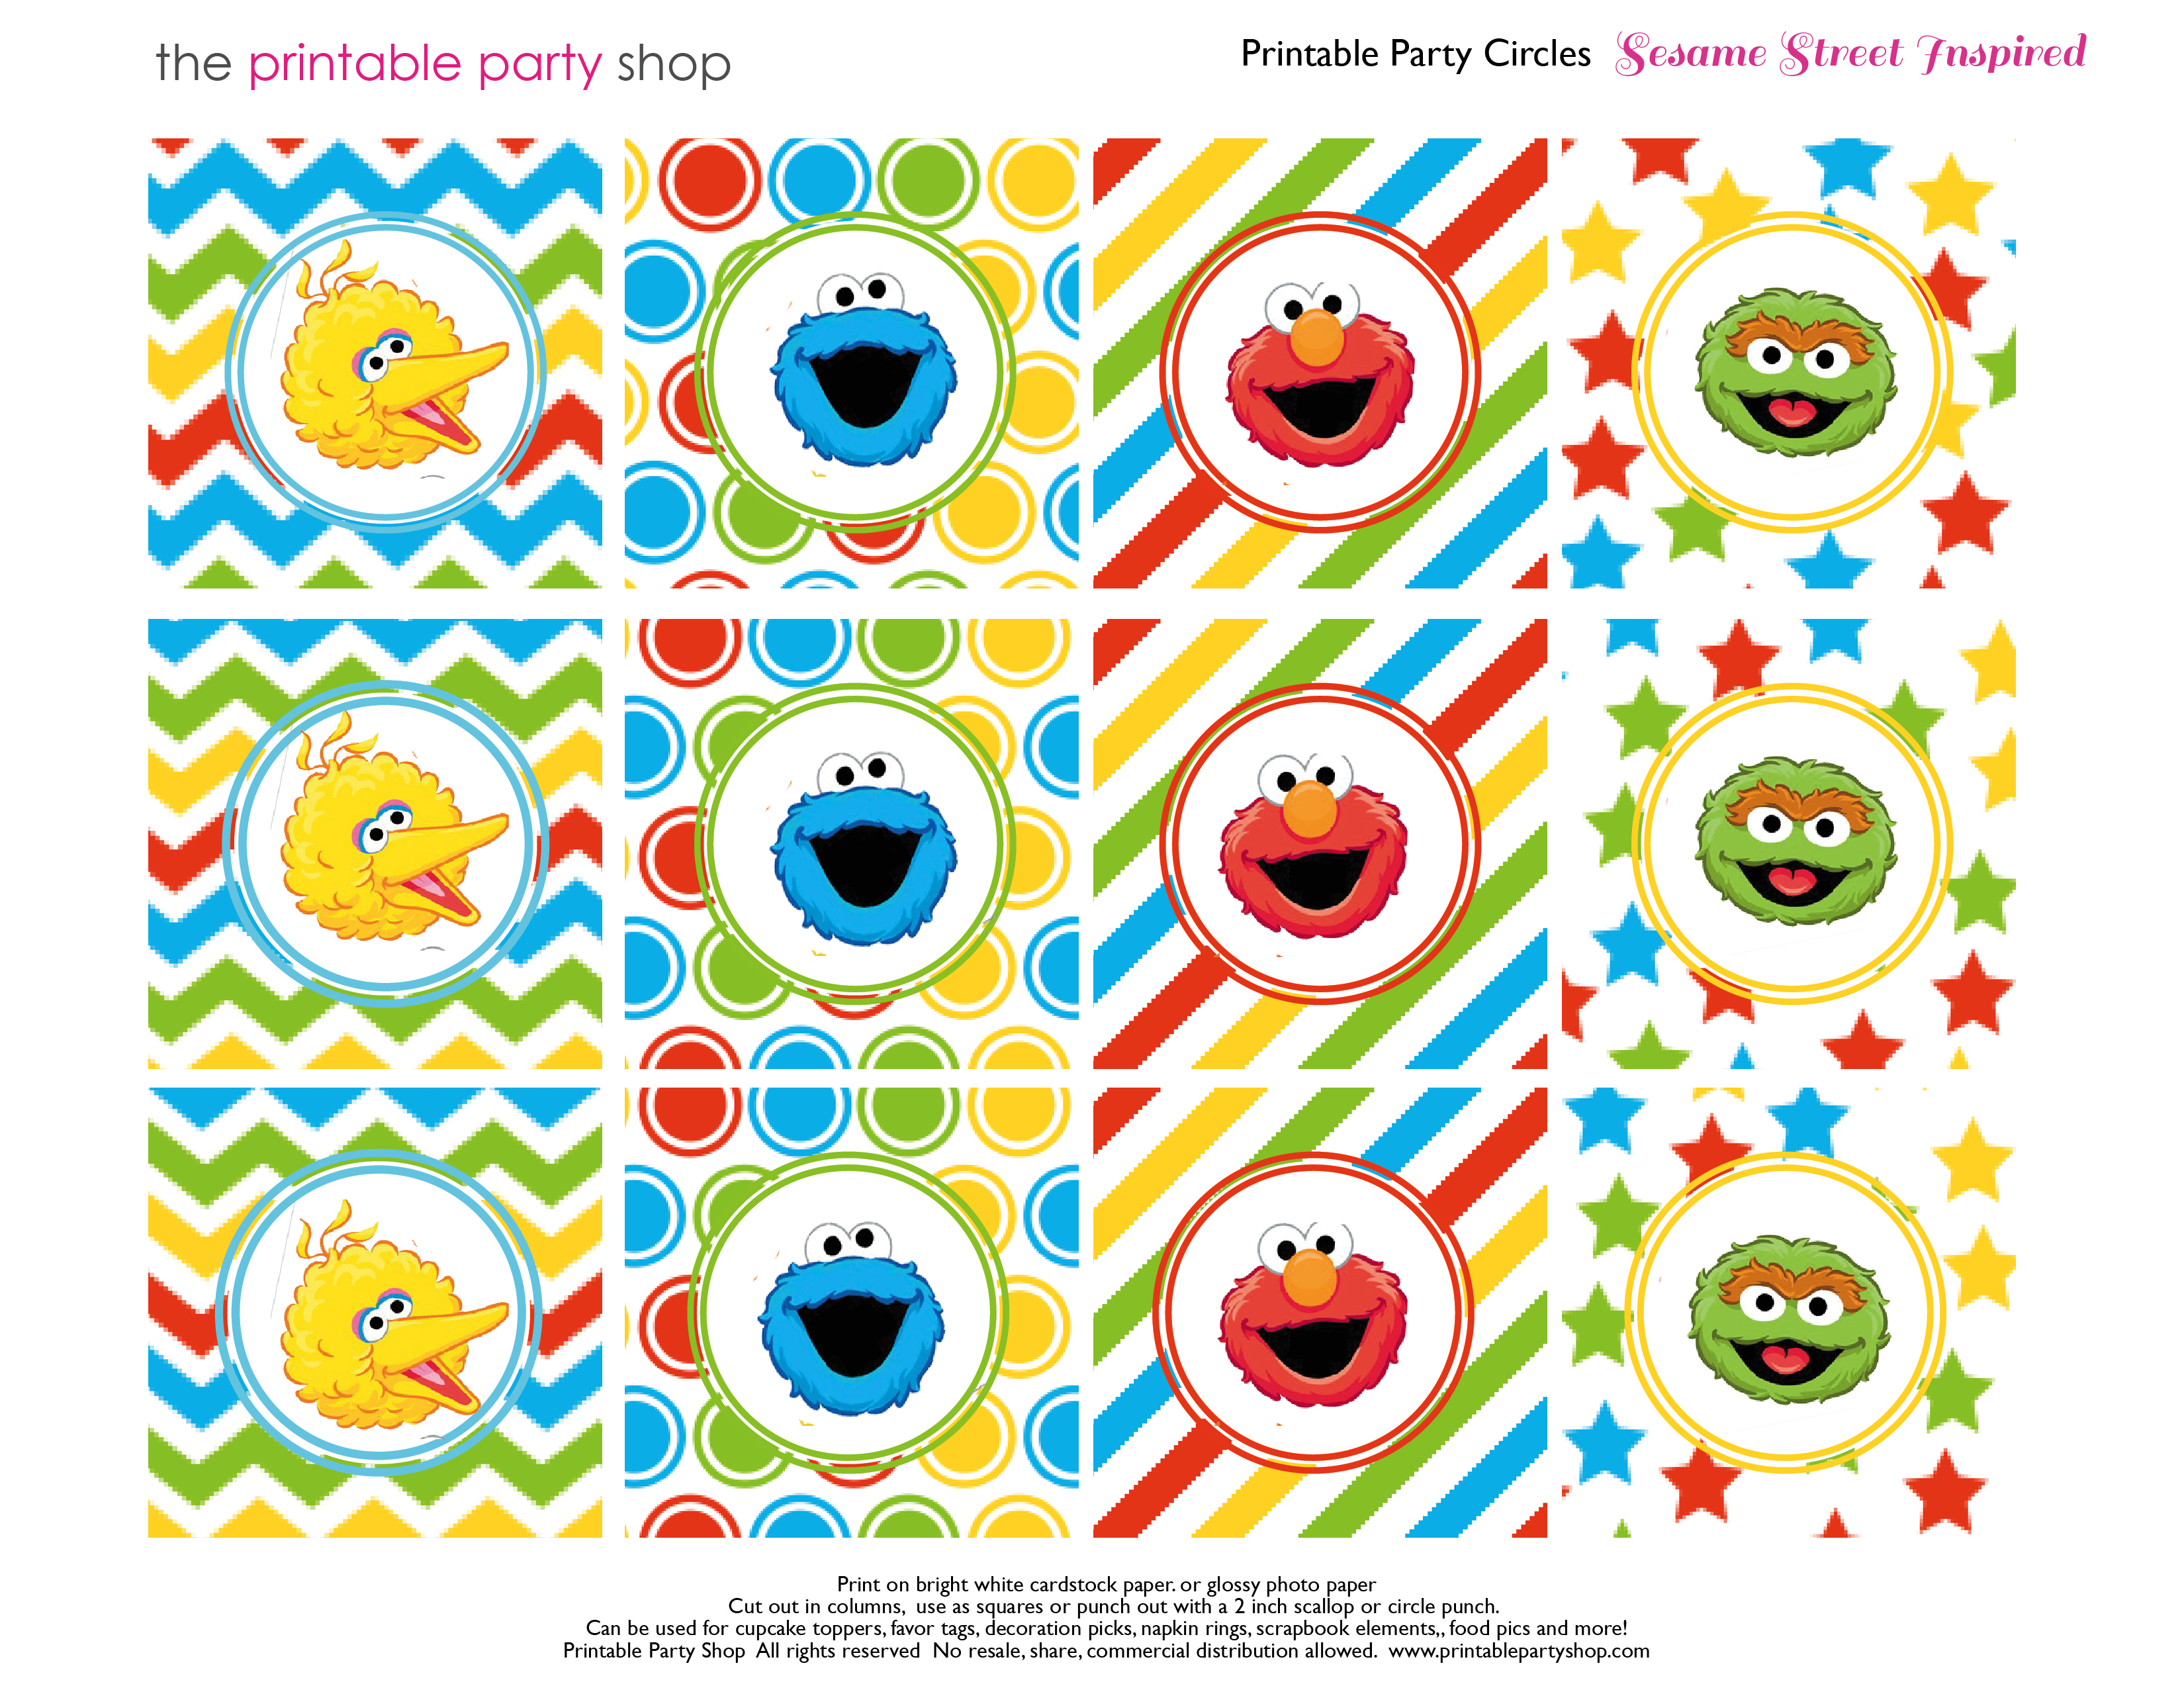 228346643576829565 in addition Sesame Street Party additionally Free Printable Lego Invitation Templates in addition 471681760952758798 in addition Sesame Street Hd Wallpaper Desktop. on sesame street party labels cookie